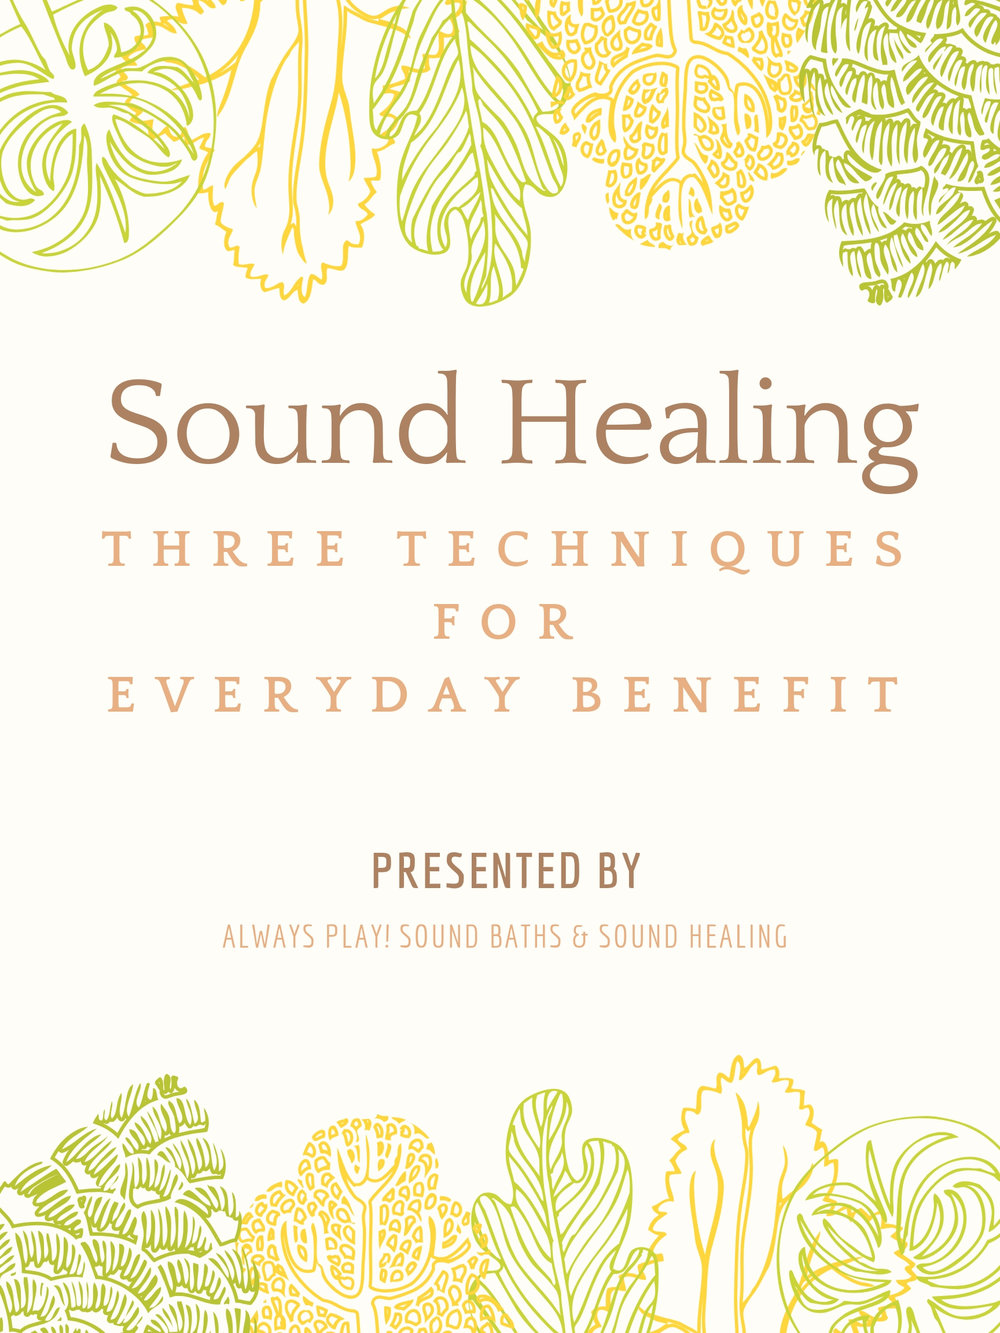 Sound Healing Techniques for Everyday Benefit.jpg